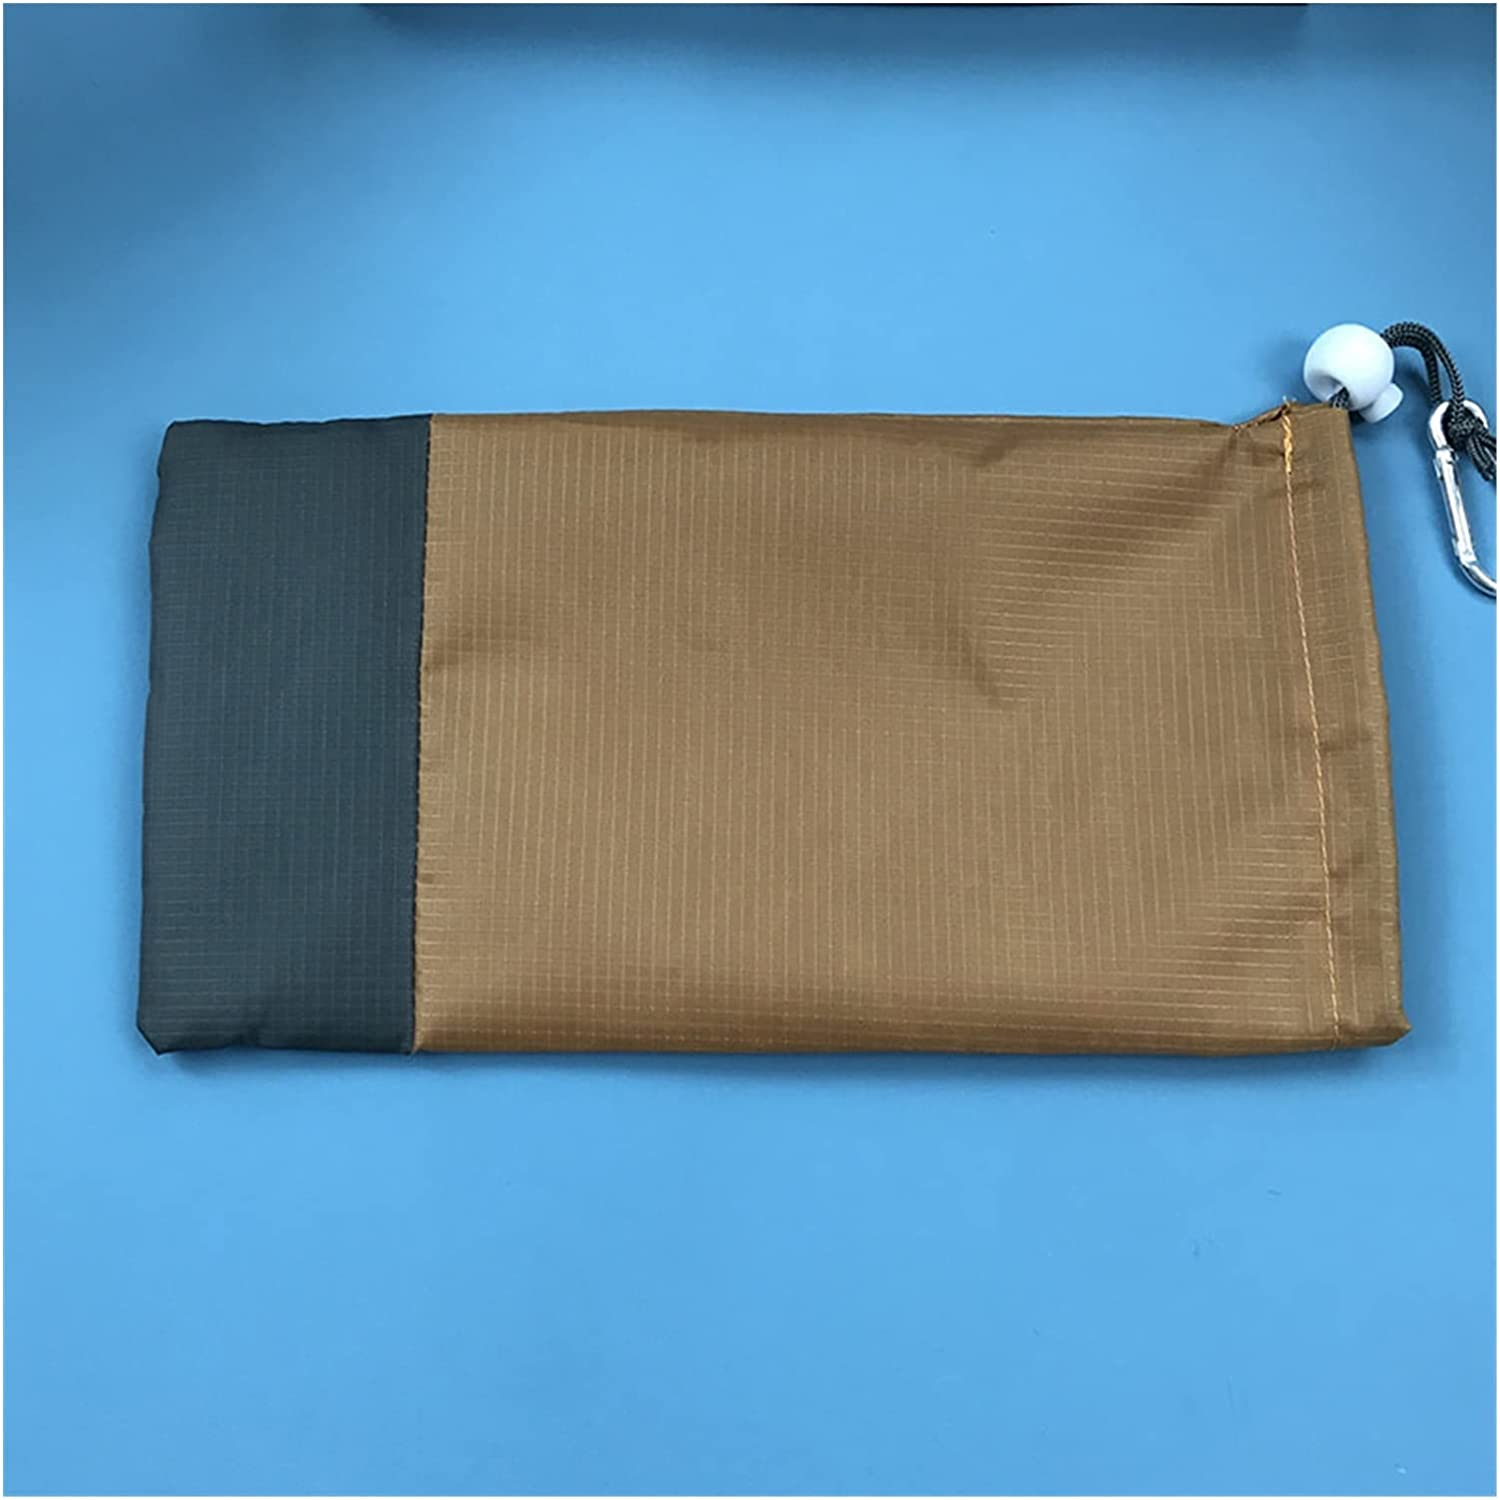 AQHXLS Outdoor Camping Picnic Selling rankings Blanket High quality Waterproof Pla Beach Mat